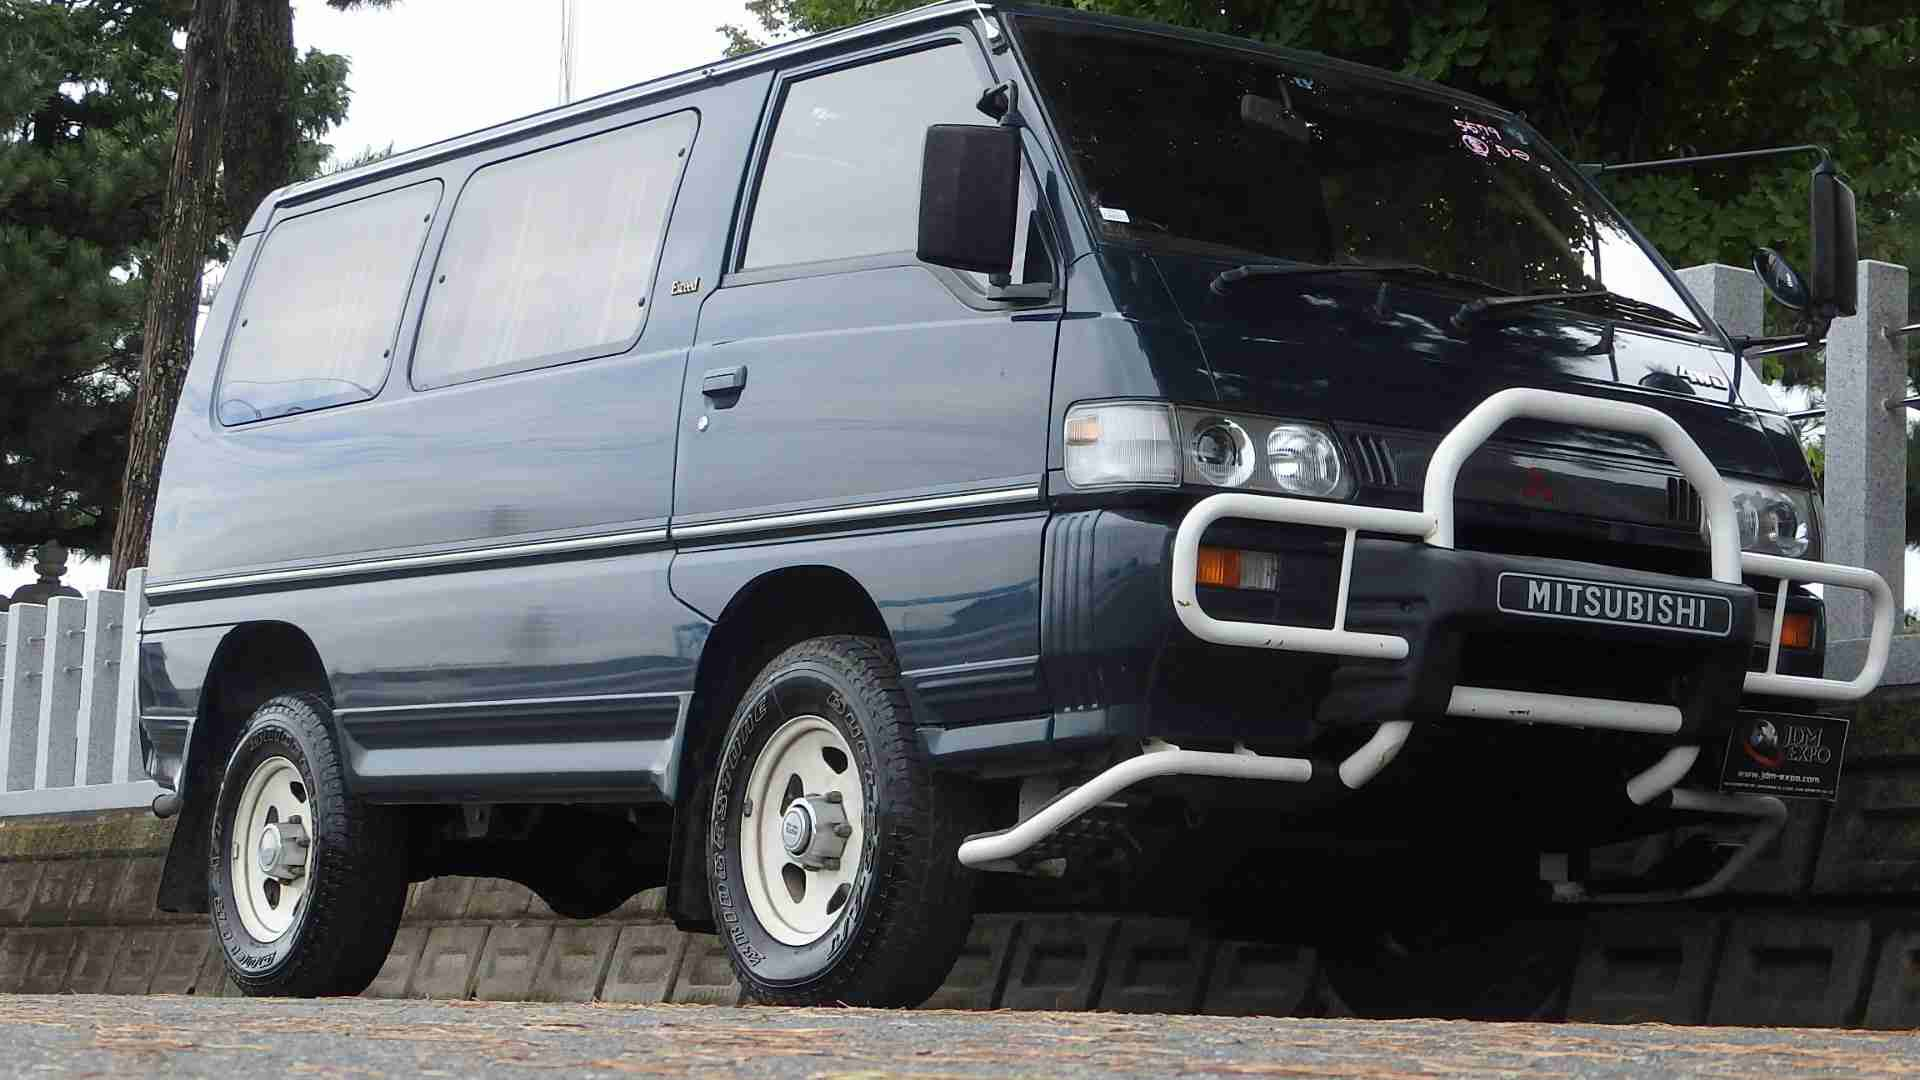 Mitsubishi Delica Star Wagon Diesel For Sale In Japan At